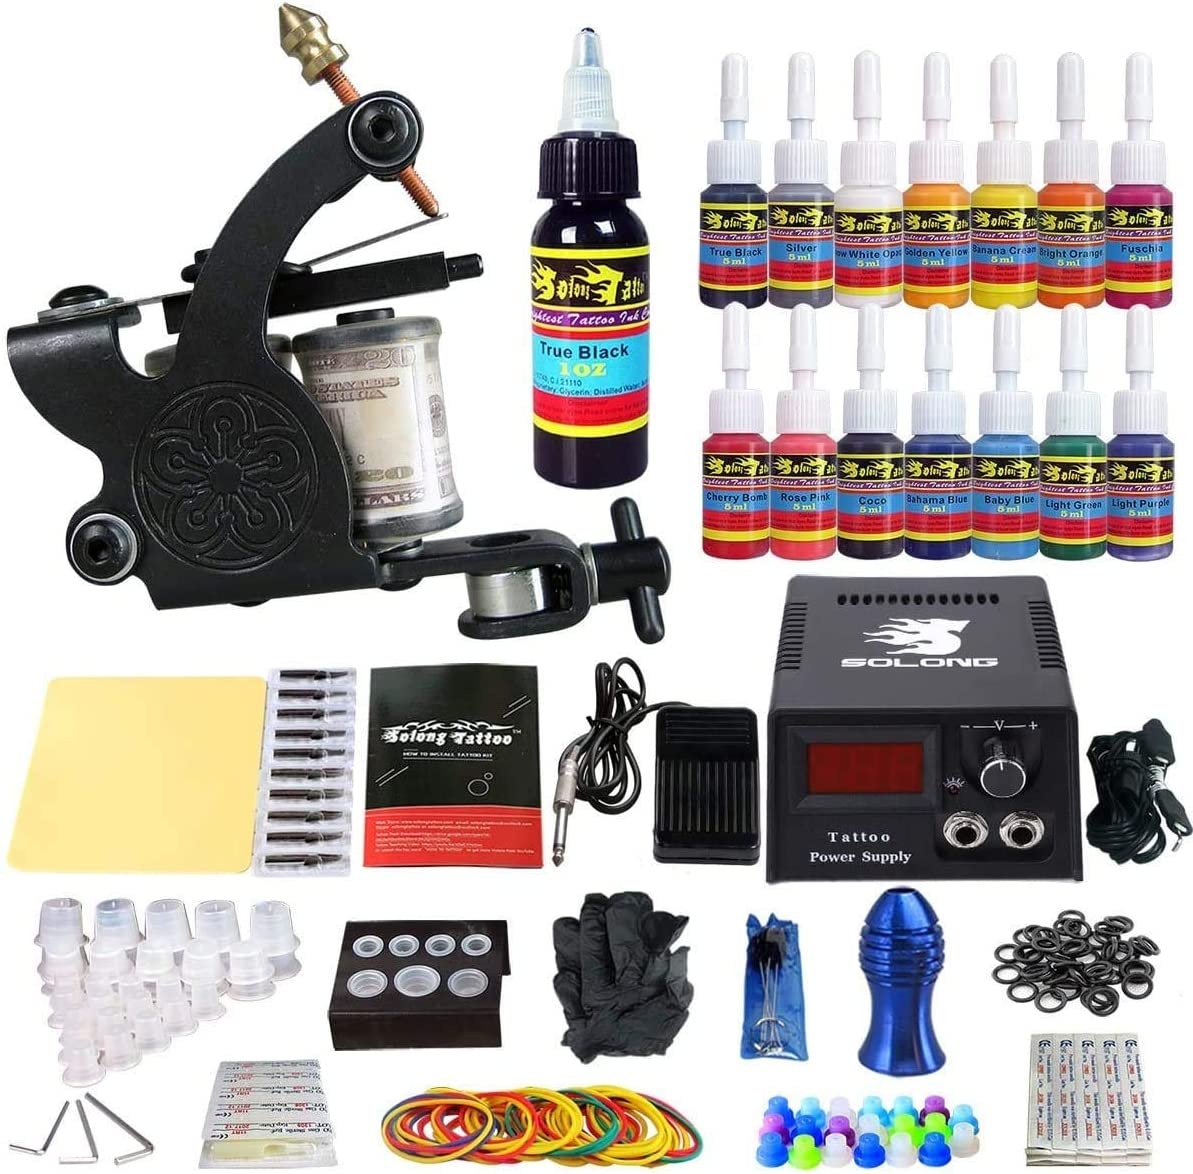 Solong Tattoo Complete Starter Tattoo Kit 1 Pro Machine Guns 14 Inks Power  Supply Foot Pedal Needles Grips Tips TK102: Amazon.in: Health & Personal  Care